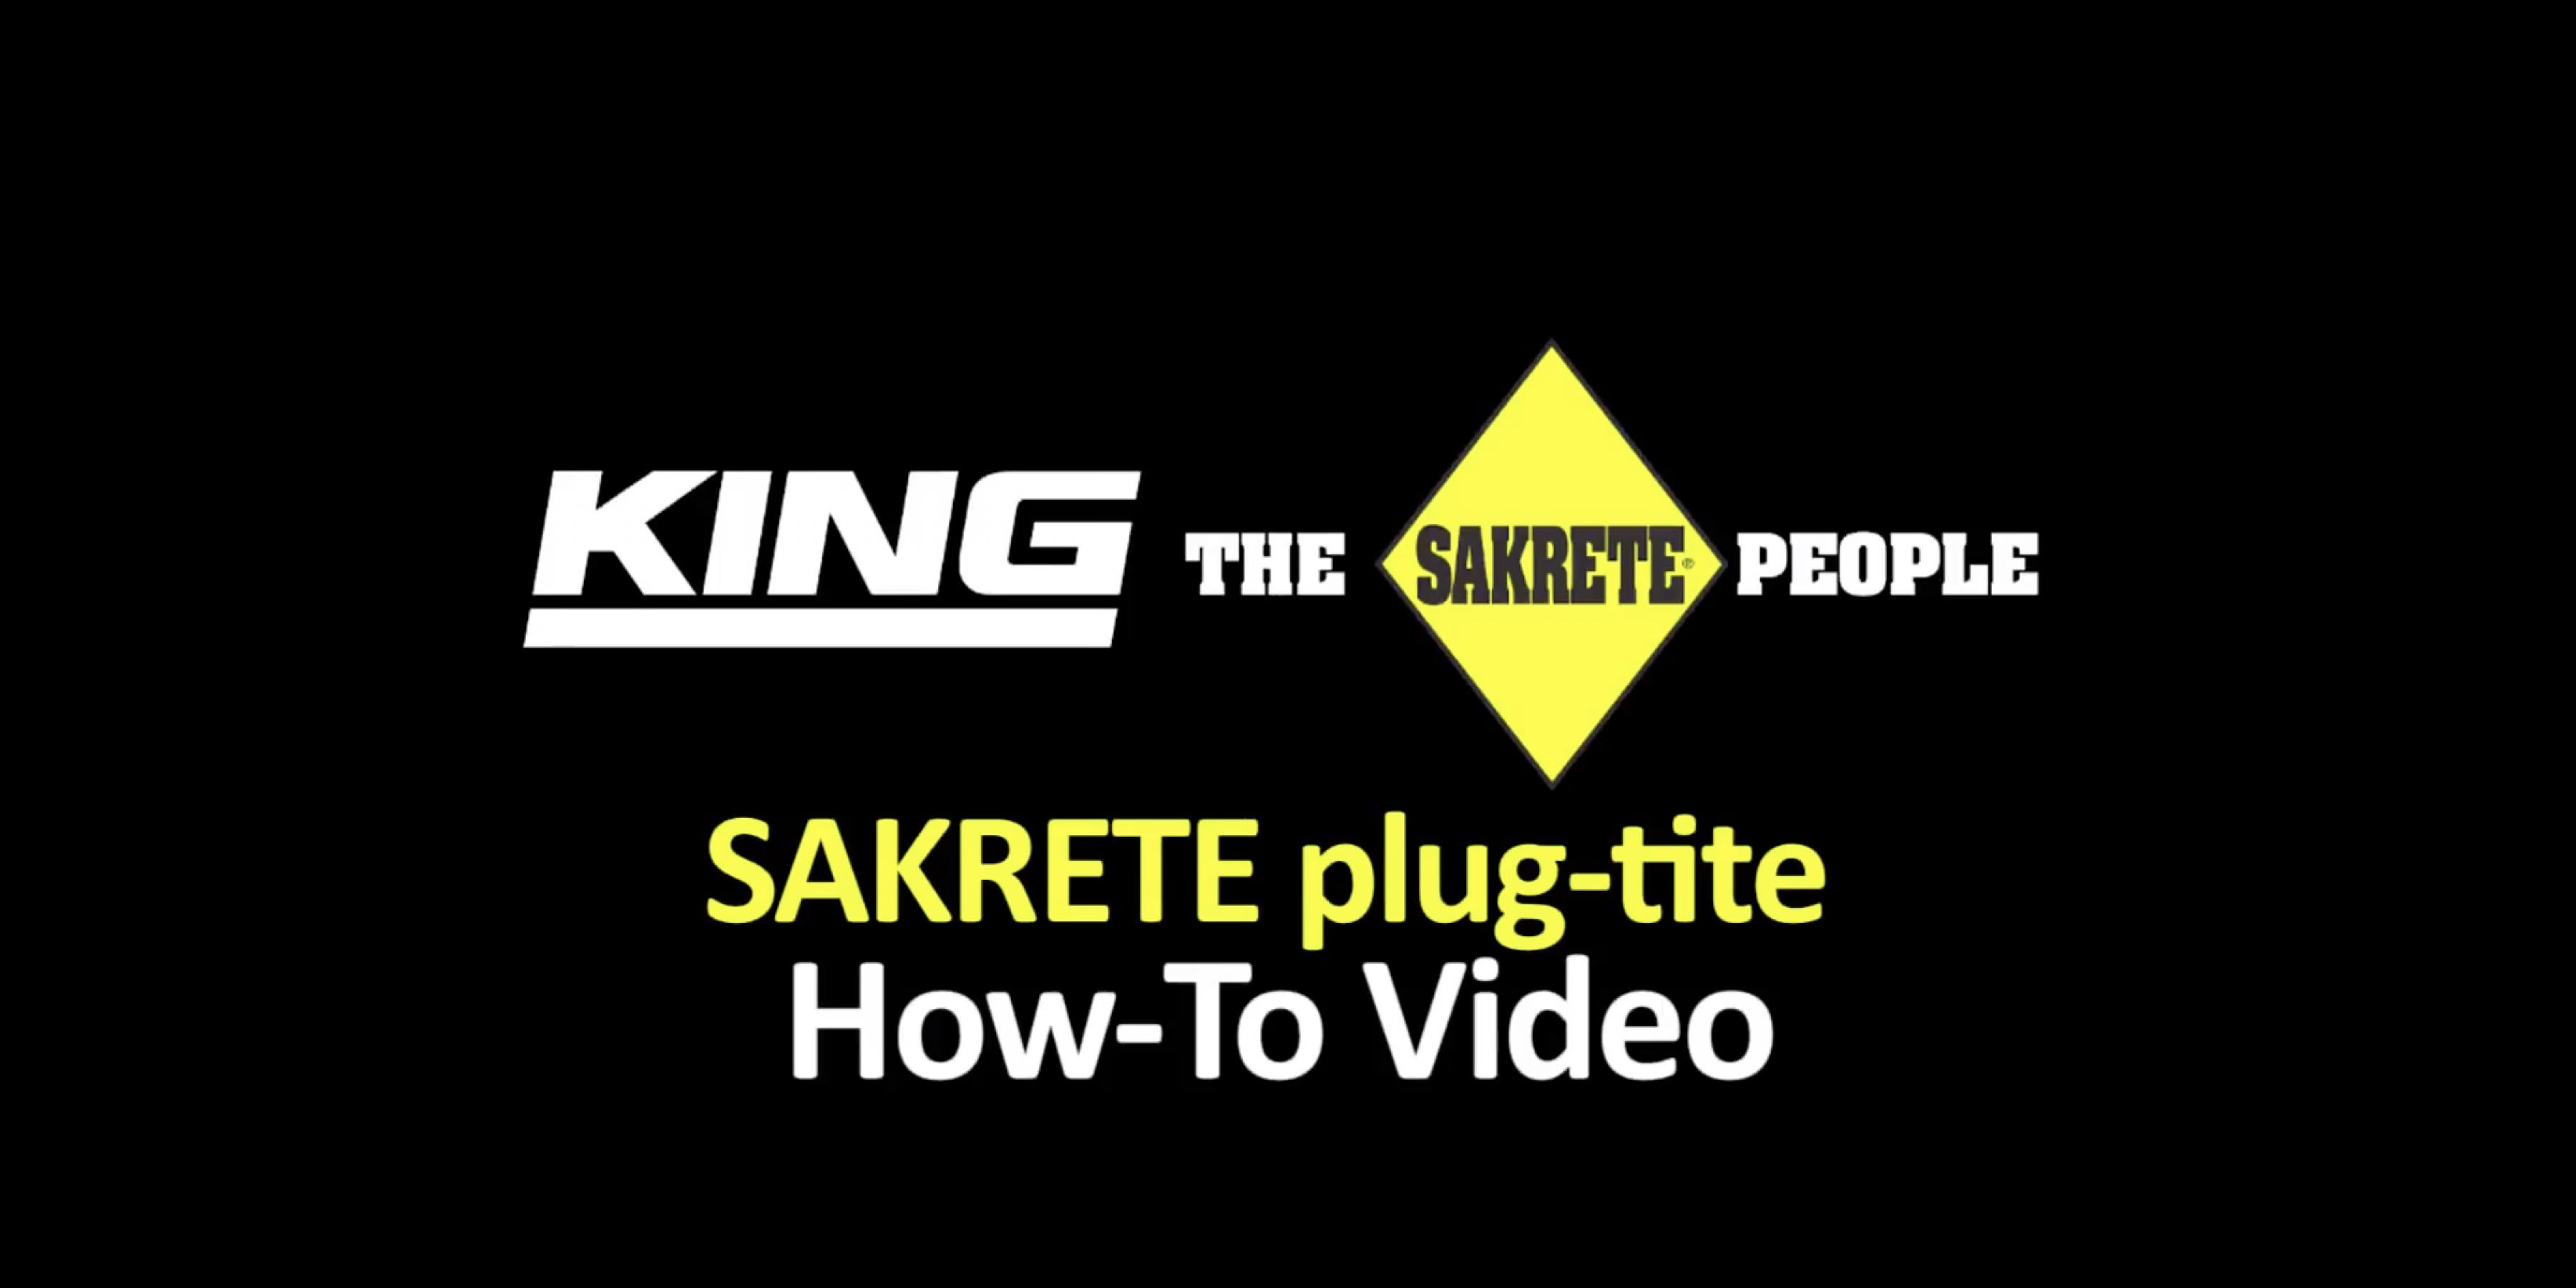 sakrete rapid post instructions